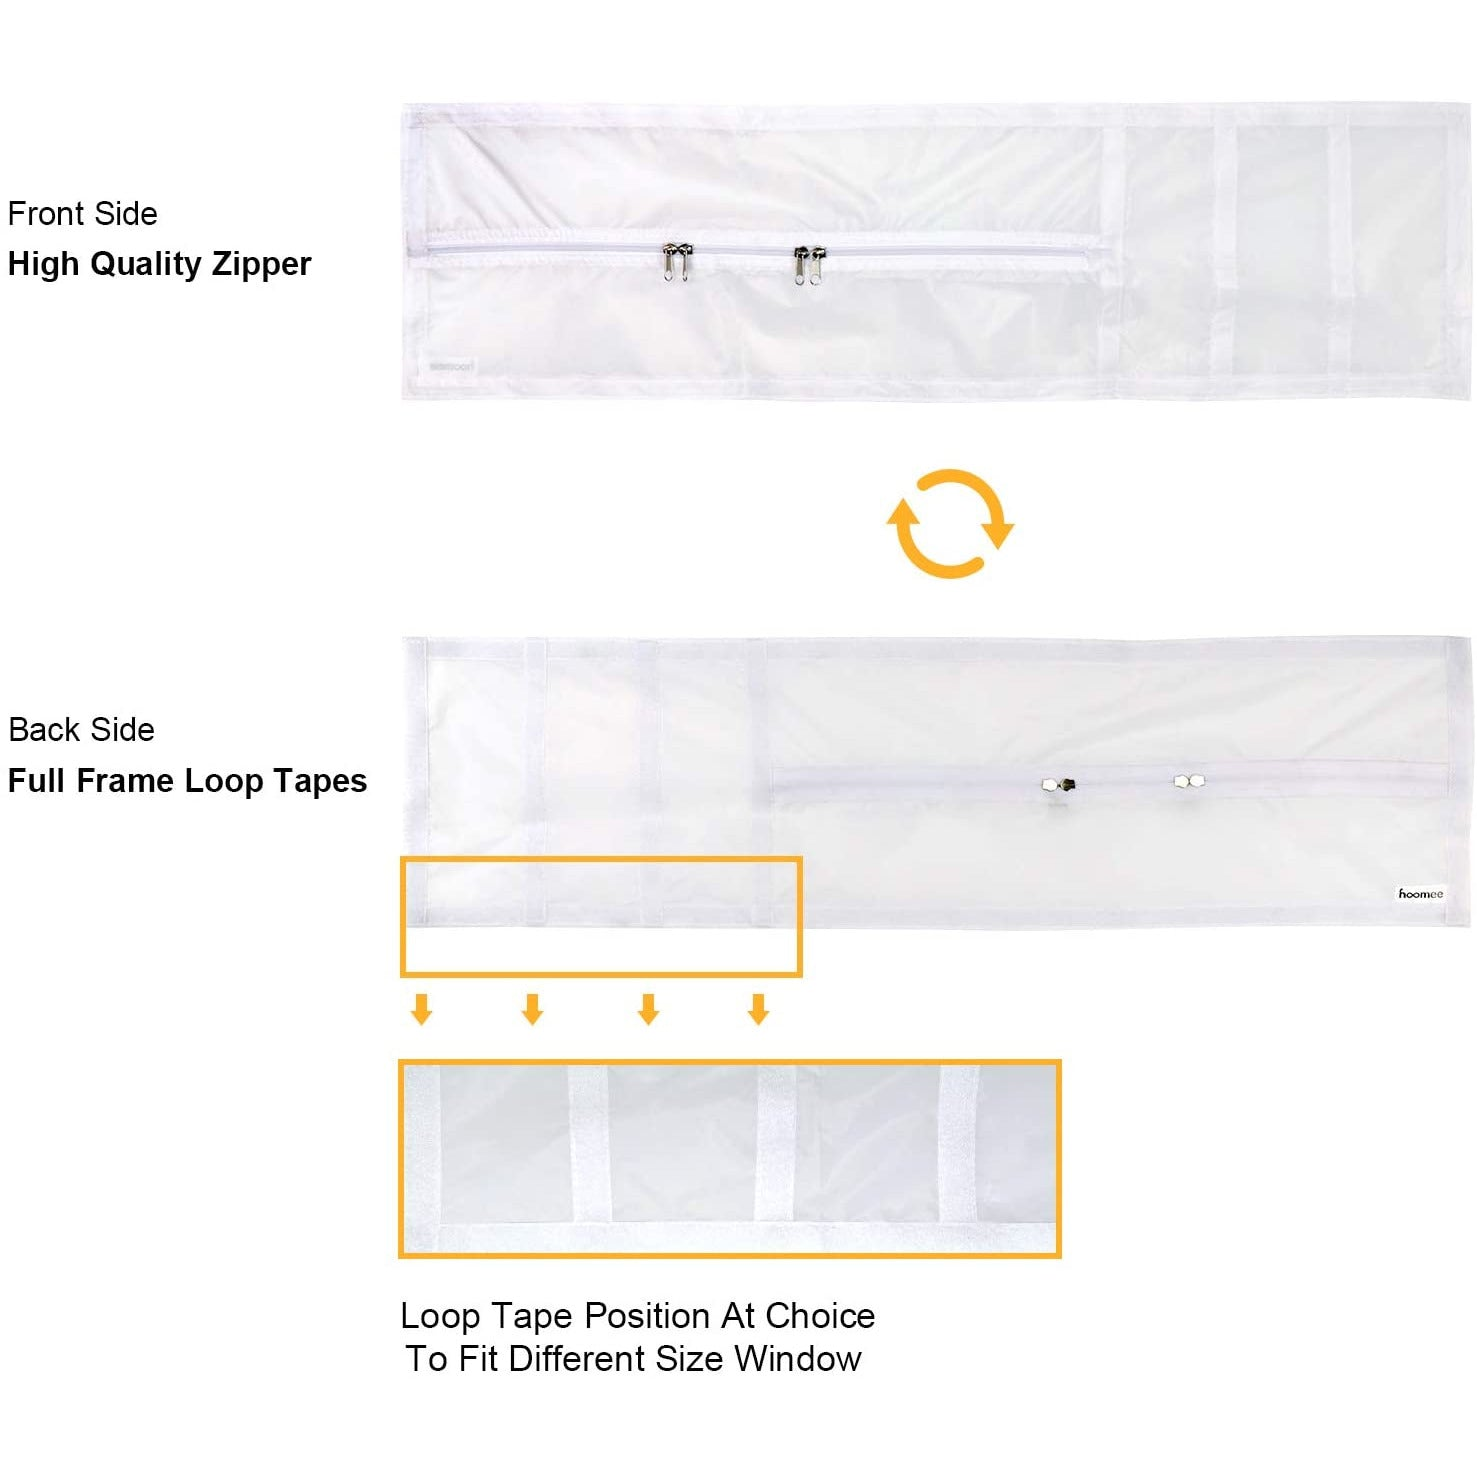 Adjustable Hung Window Seal for Portable Air Conditioner and Tumble Dryer –Min Size 25x62 cm Max Size25x92cm - Works with Every Mobile Air-Conditioning Unit, Easy to Install, Waterproof